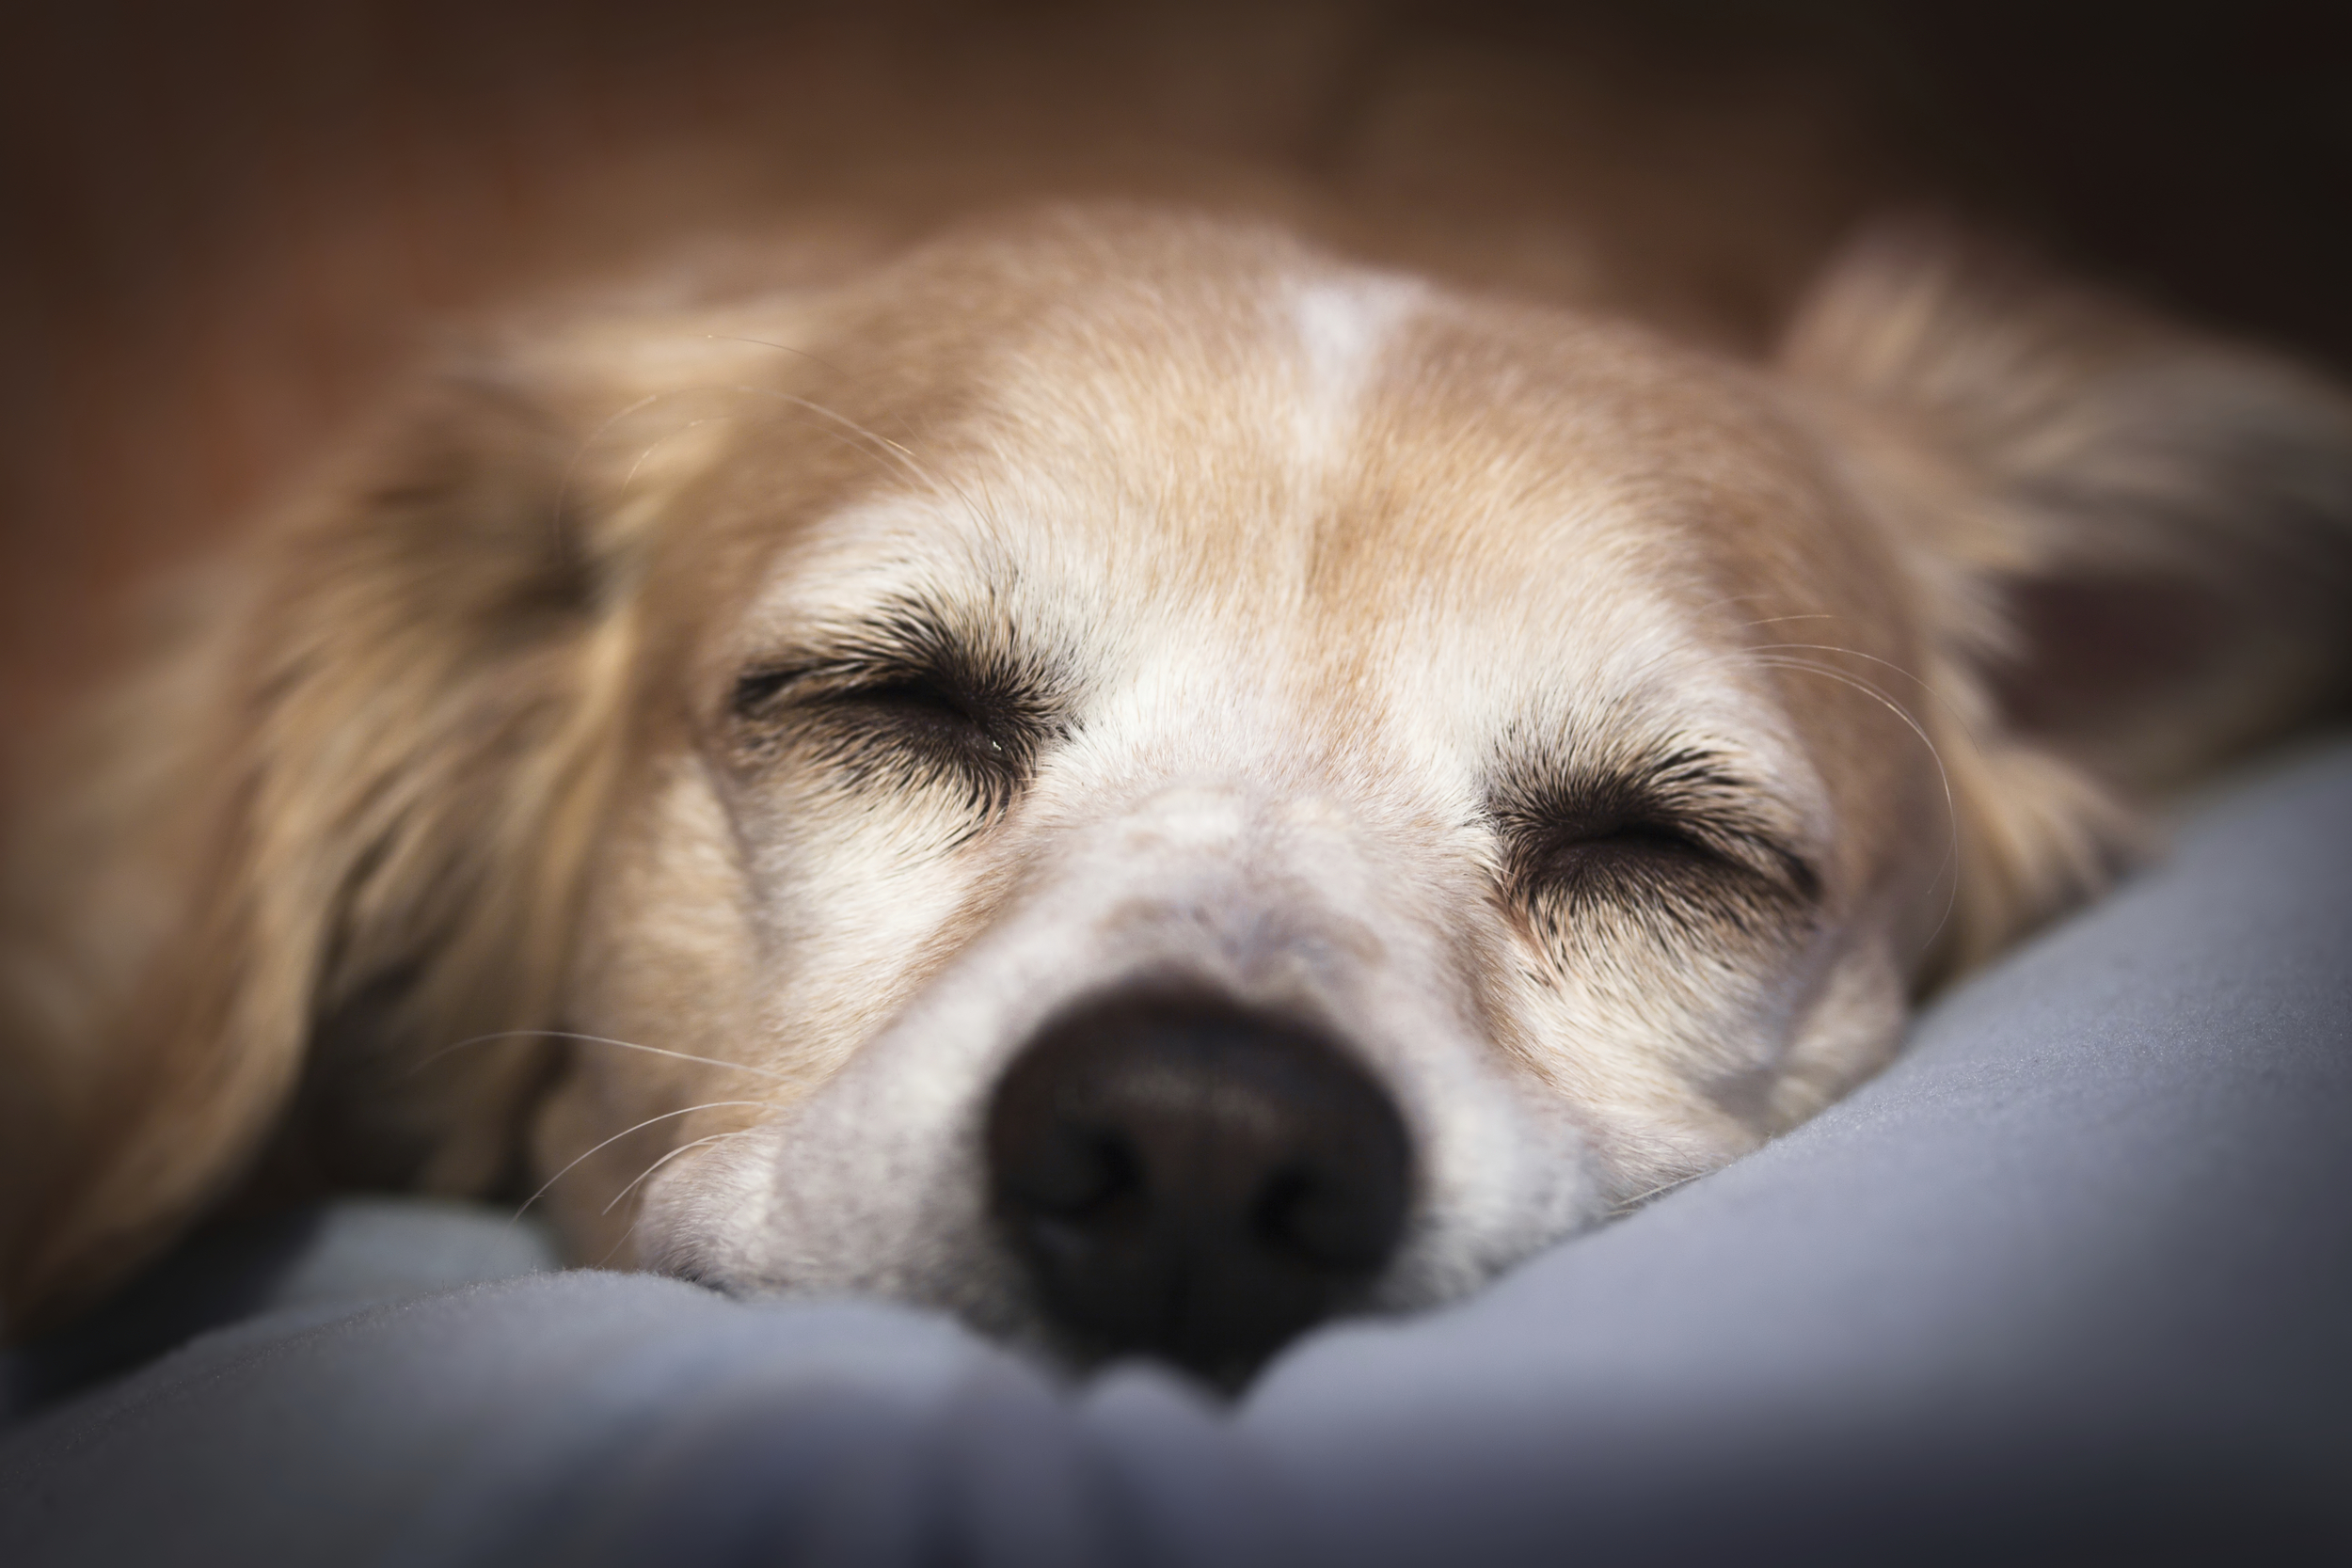 Services that can support you and your pet